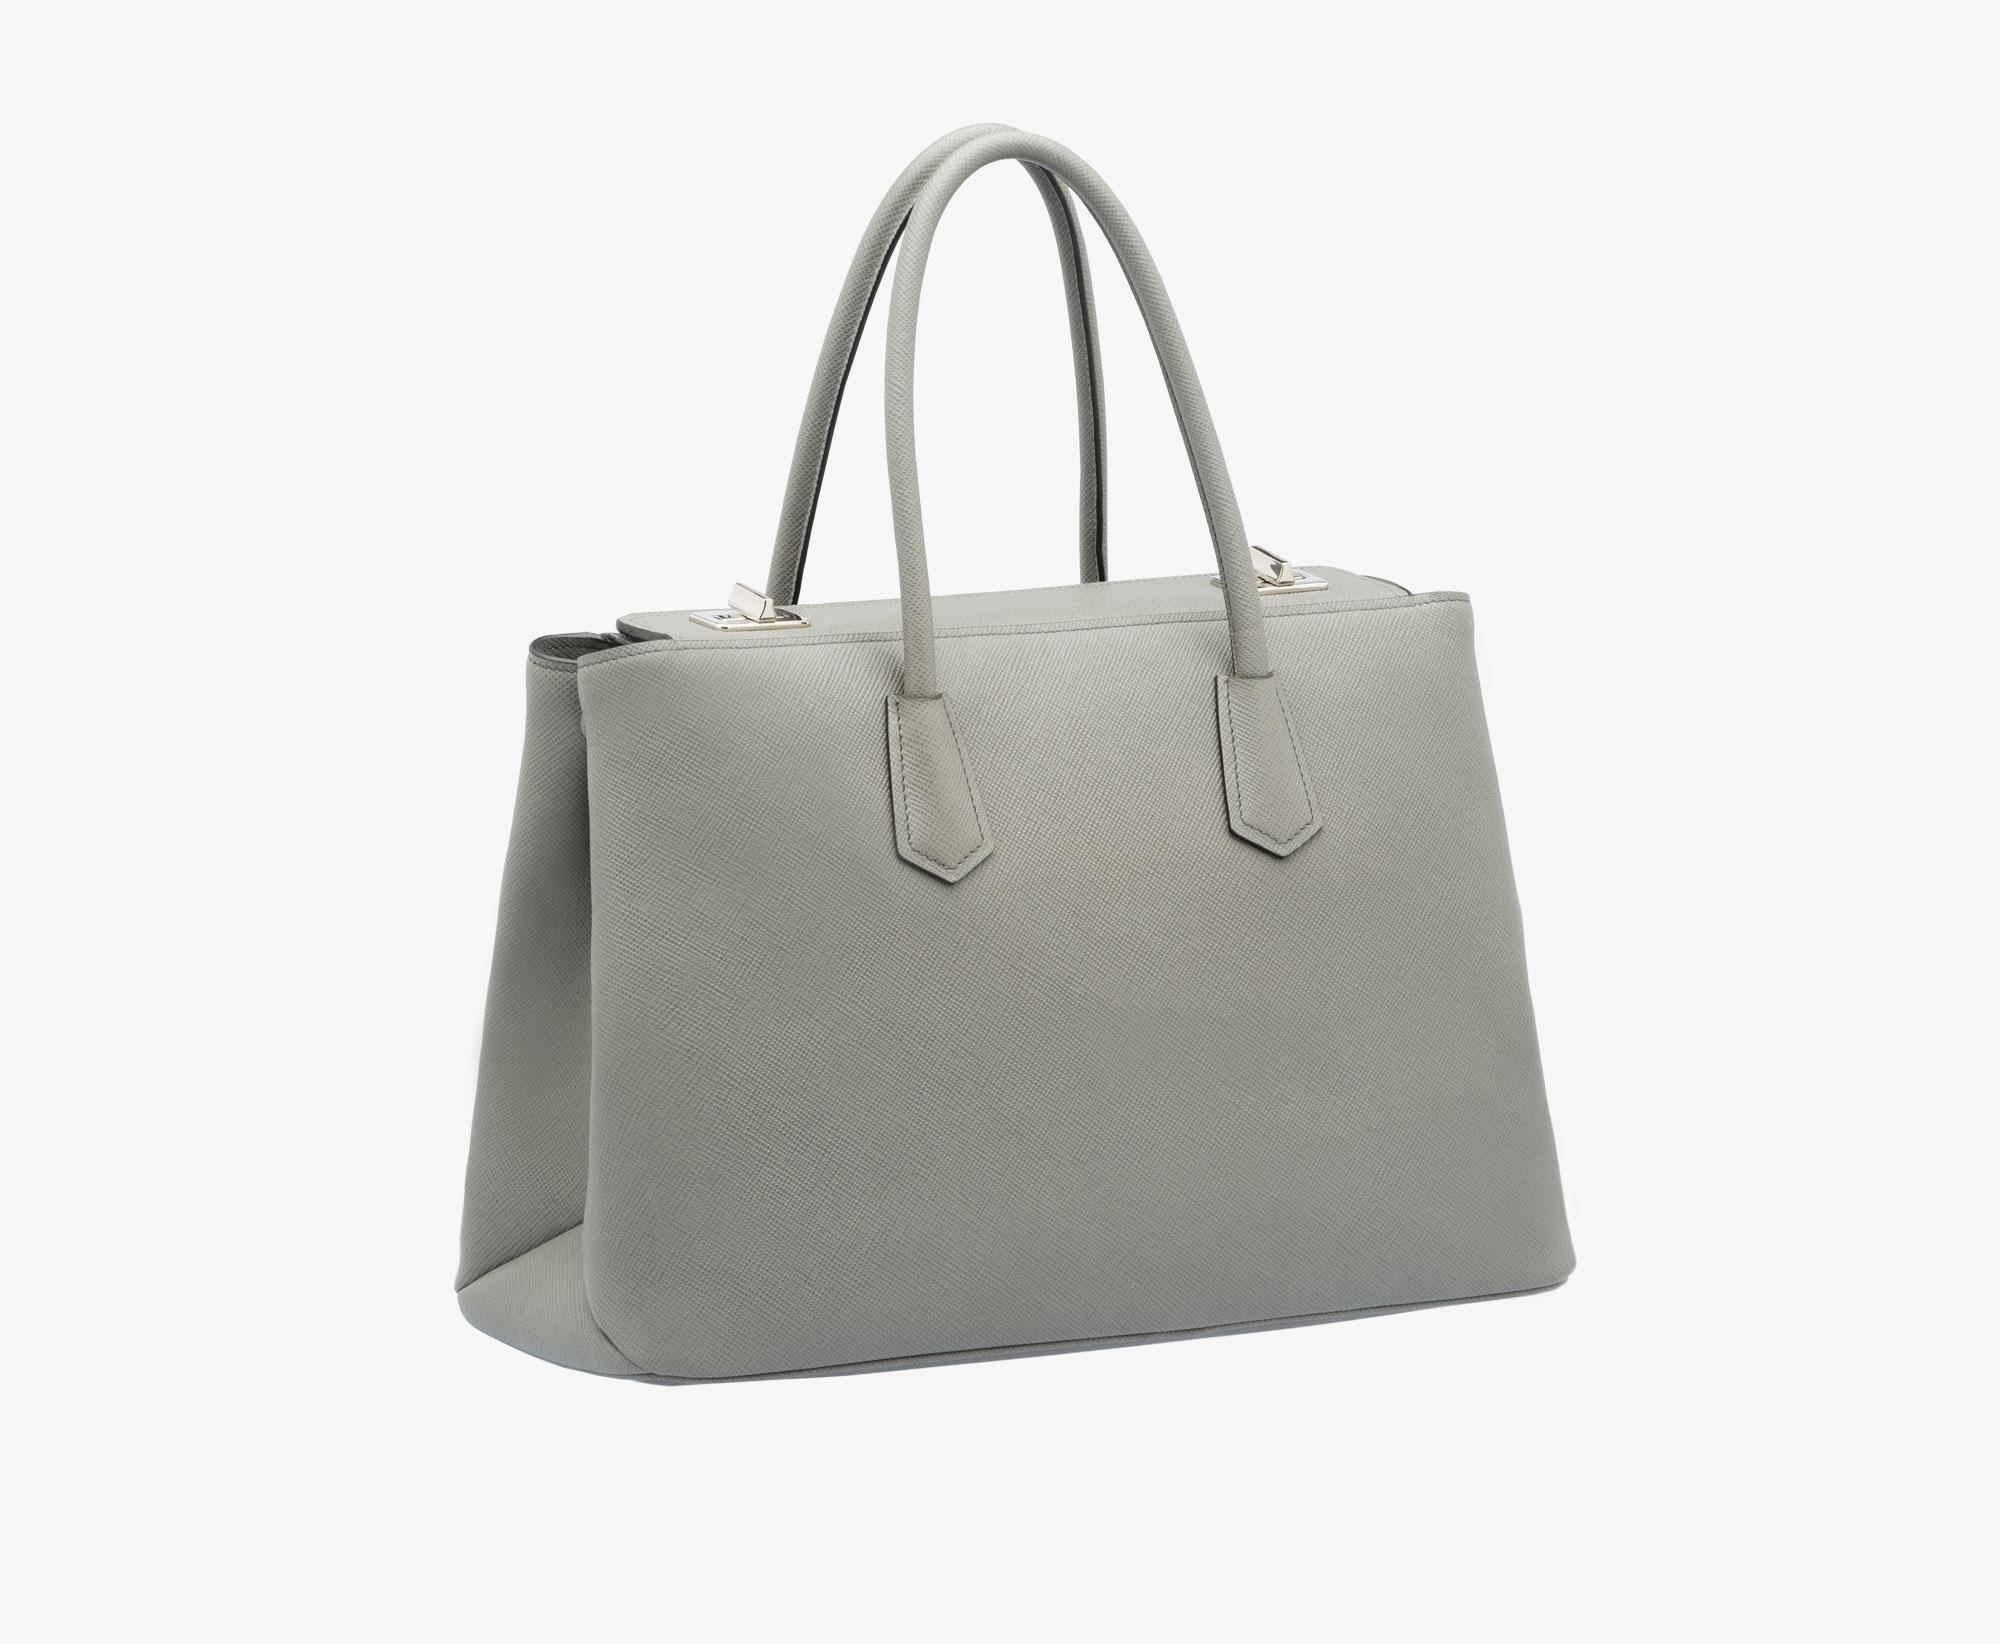 1fe62ada805a ... low cost prada tote in grey marble saffiano cuir leather.  123456789101112 535a4 16cc2